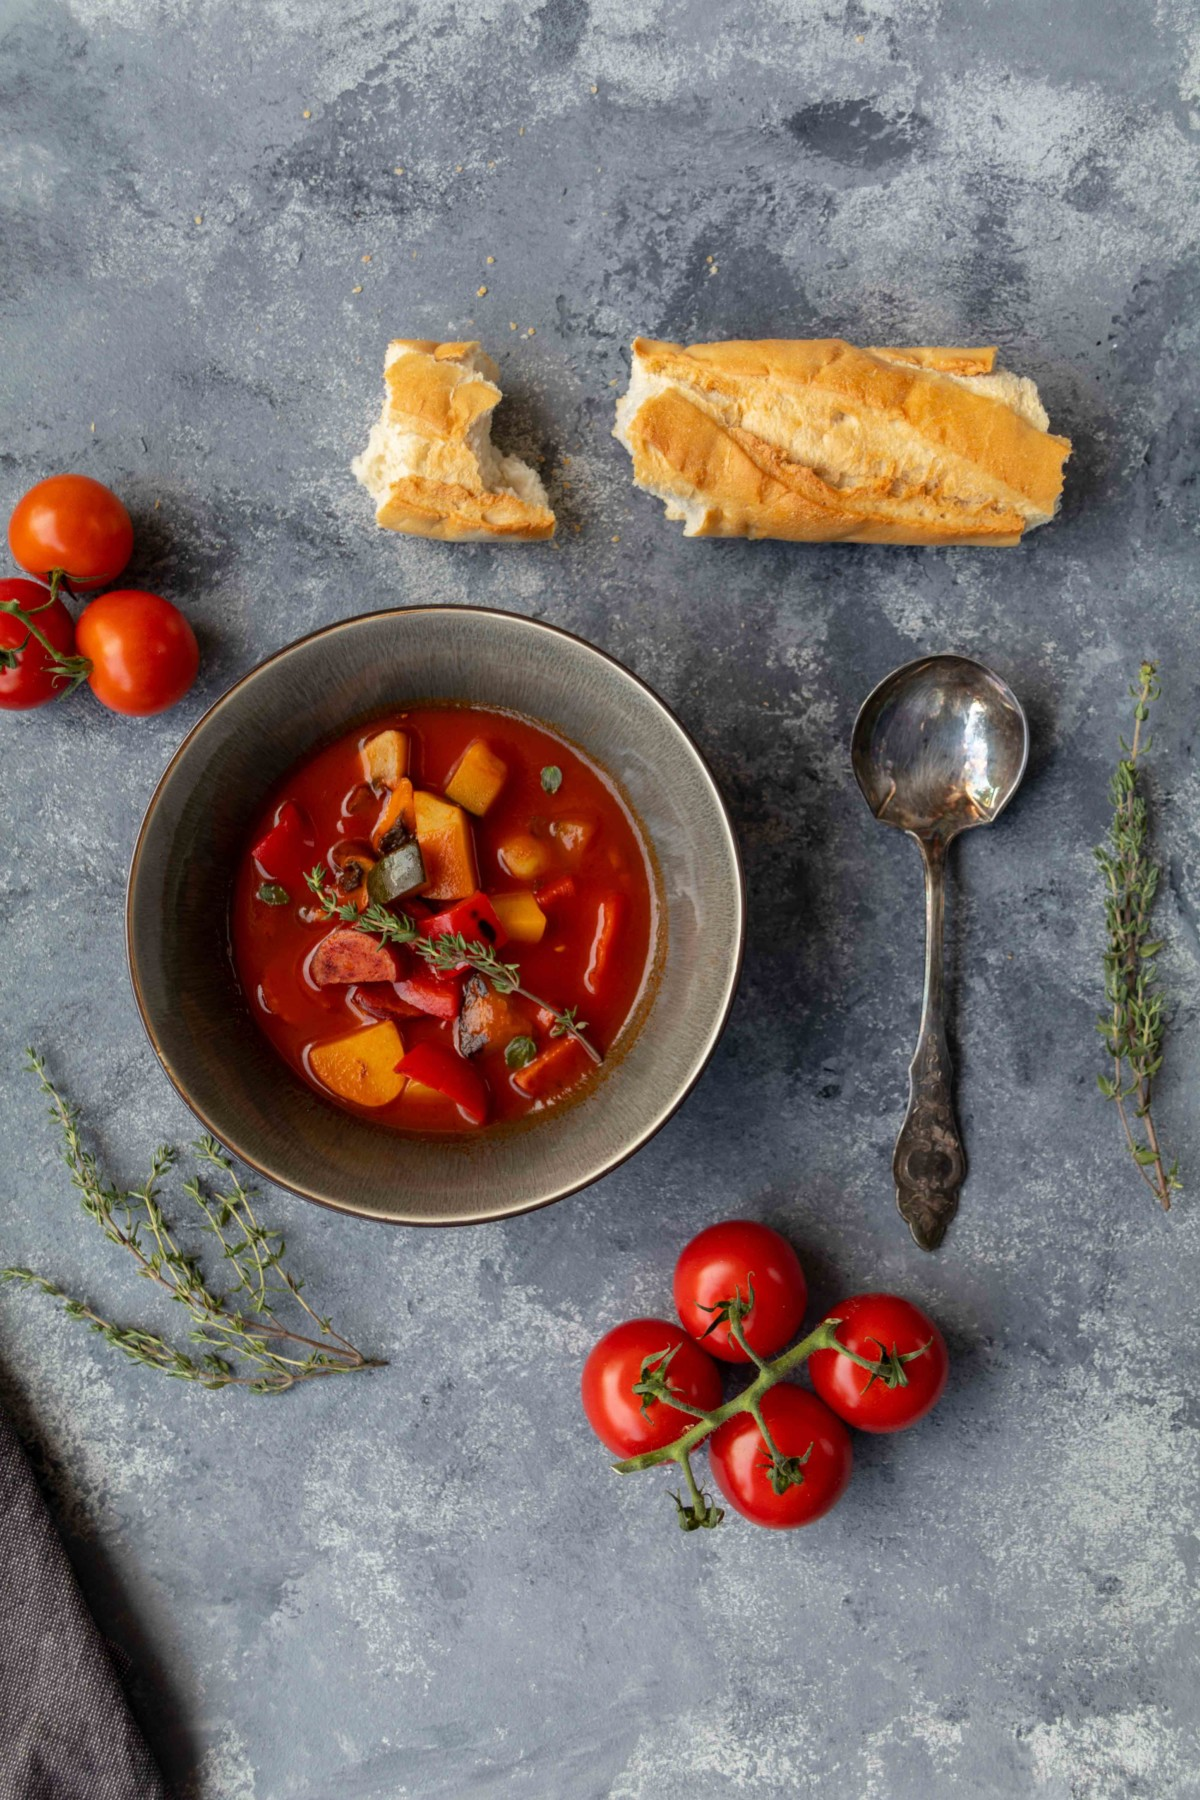 Schnelle Tomatensuppe mit Gemüse und Cabanossi // Tomato Soup with vegetables and Cabanossi by https://babyrockmyday.com/schnelle-tomatensuppe-mit-gemuese/ #werbung #Tomatensuppe #tomatosoup